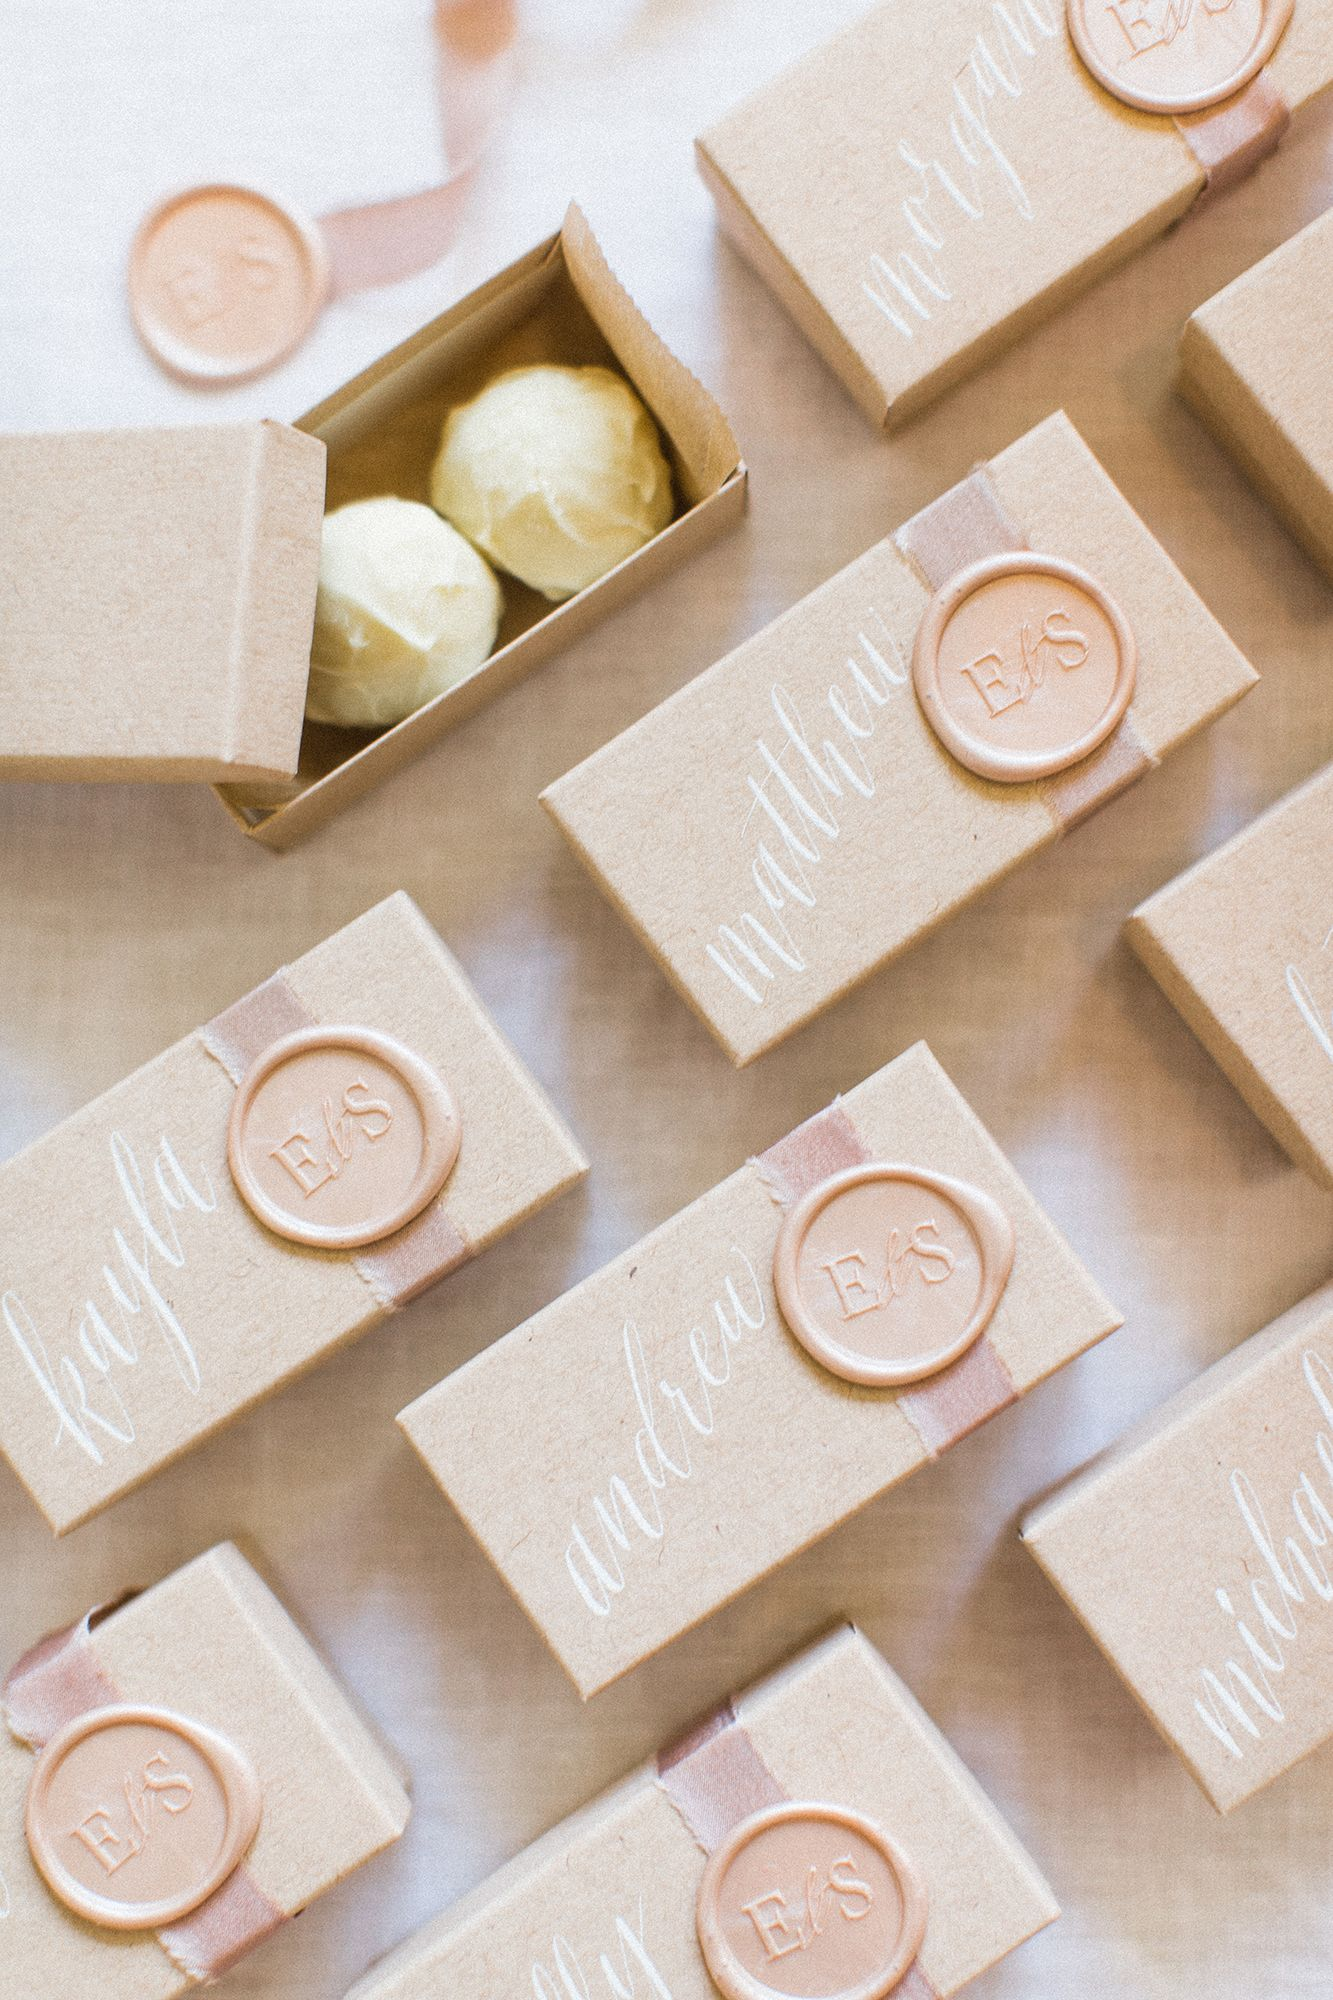 37 Edible Wedding Favors Guests Will Eat Up (Literally!)